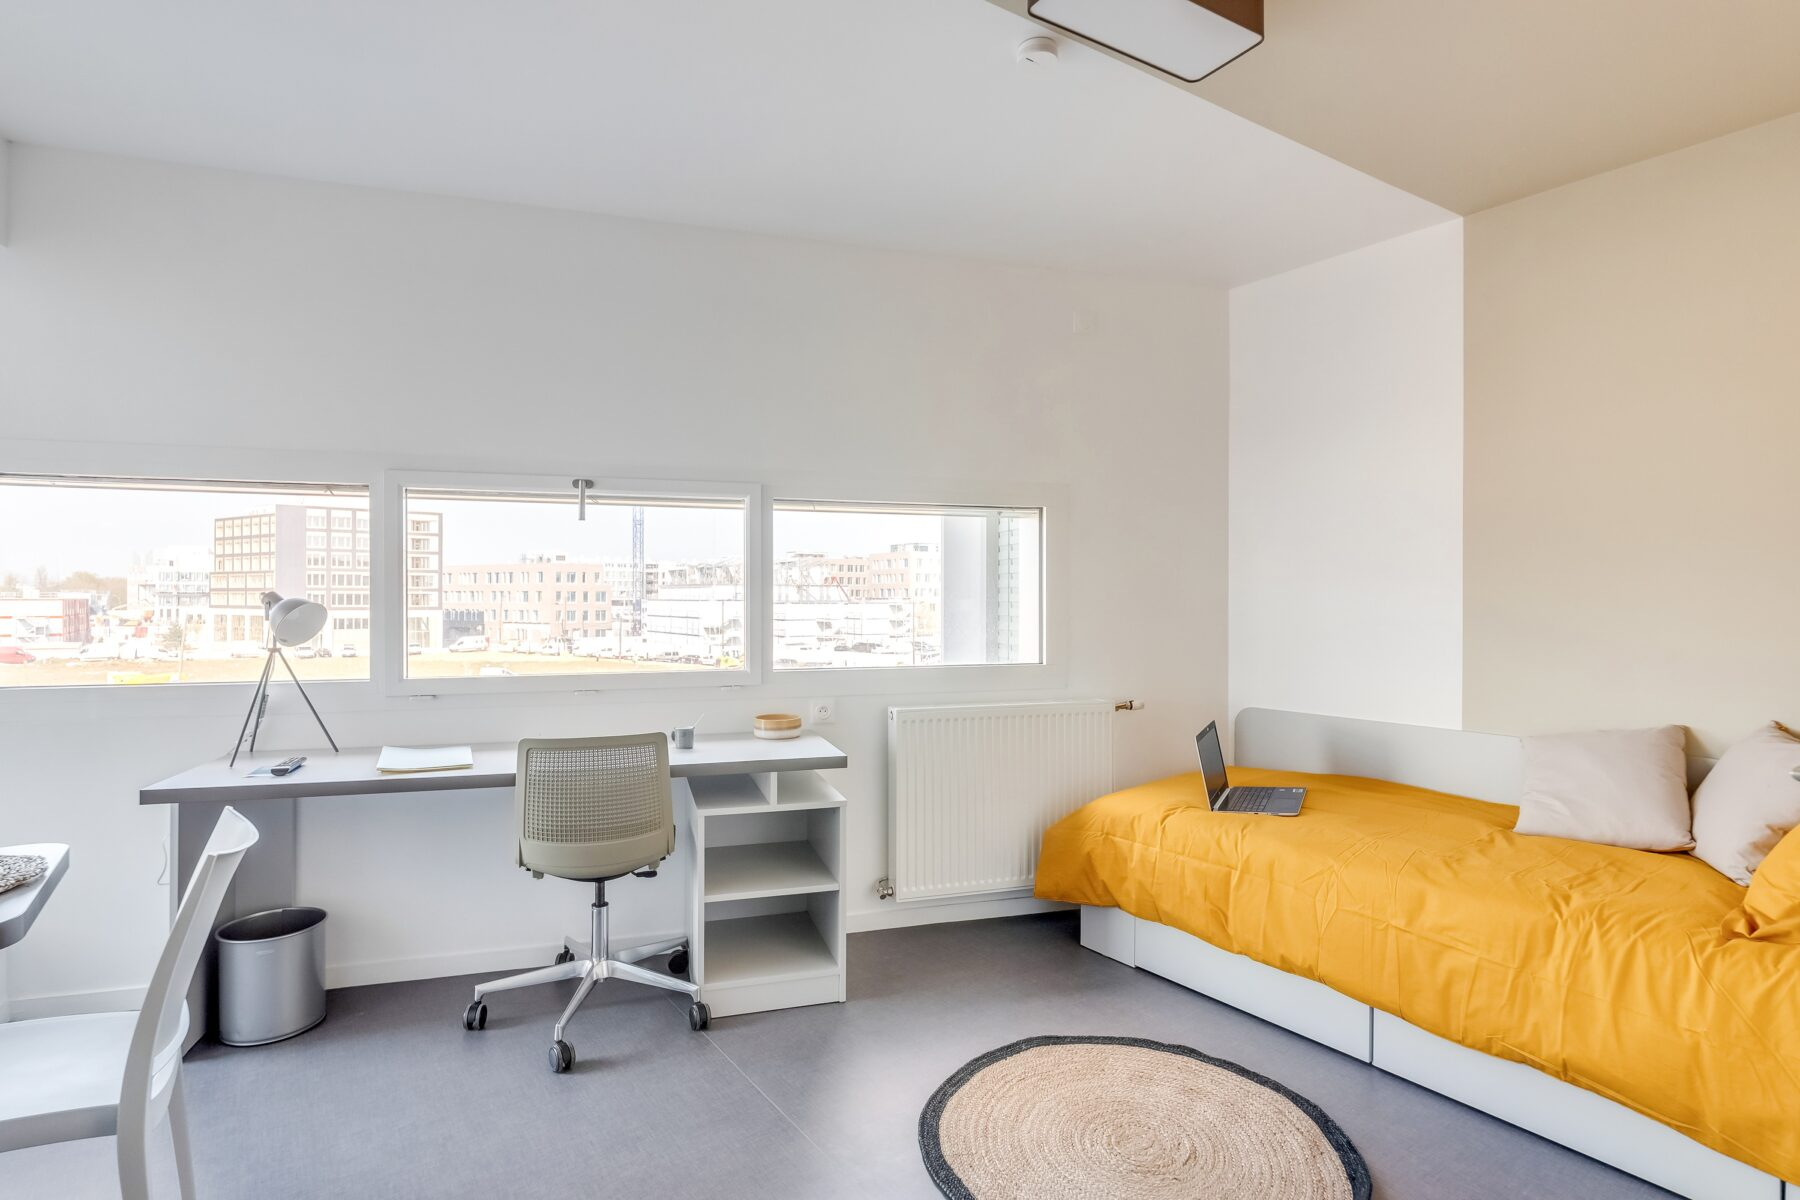 RESIDENCE HOTELIERE SACLAY